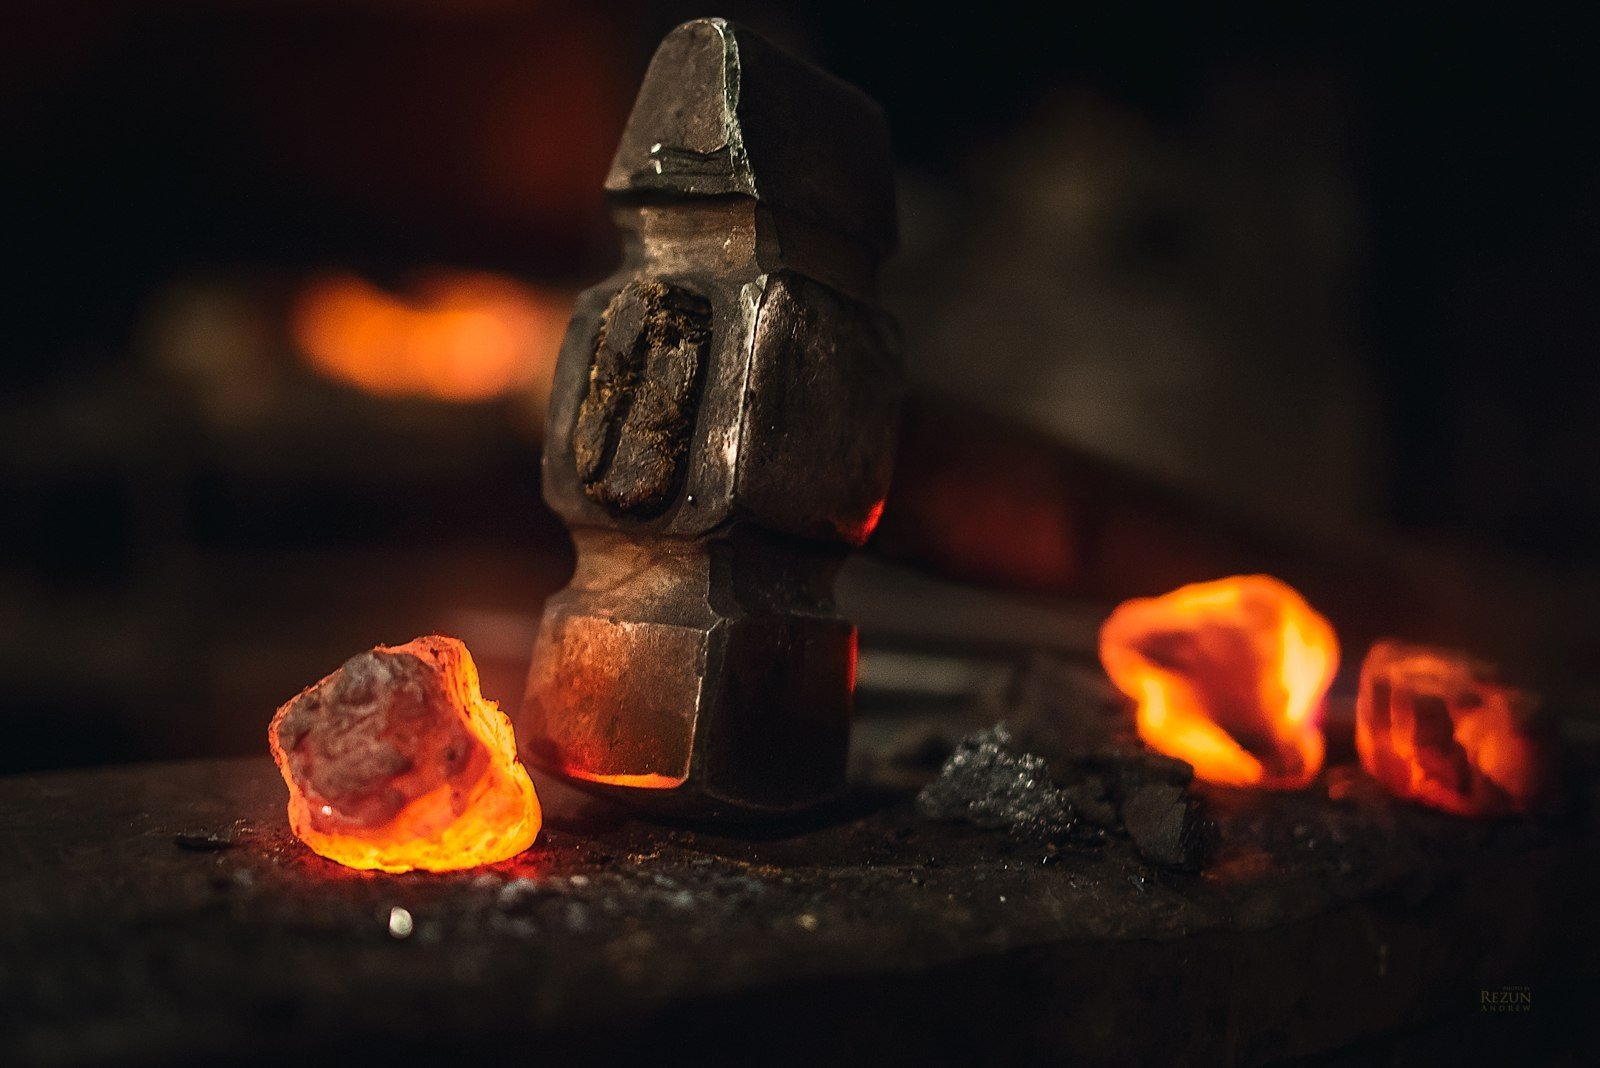 Hd Wallpapers Fire Cars Blacksmith Tools Work Mallet Embers Wallpapers Hd